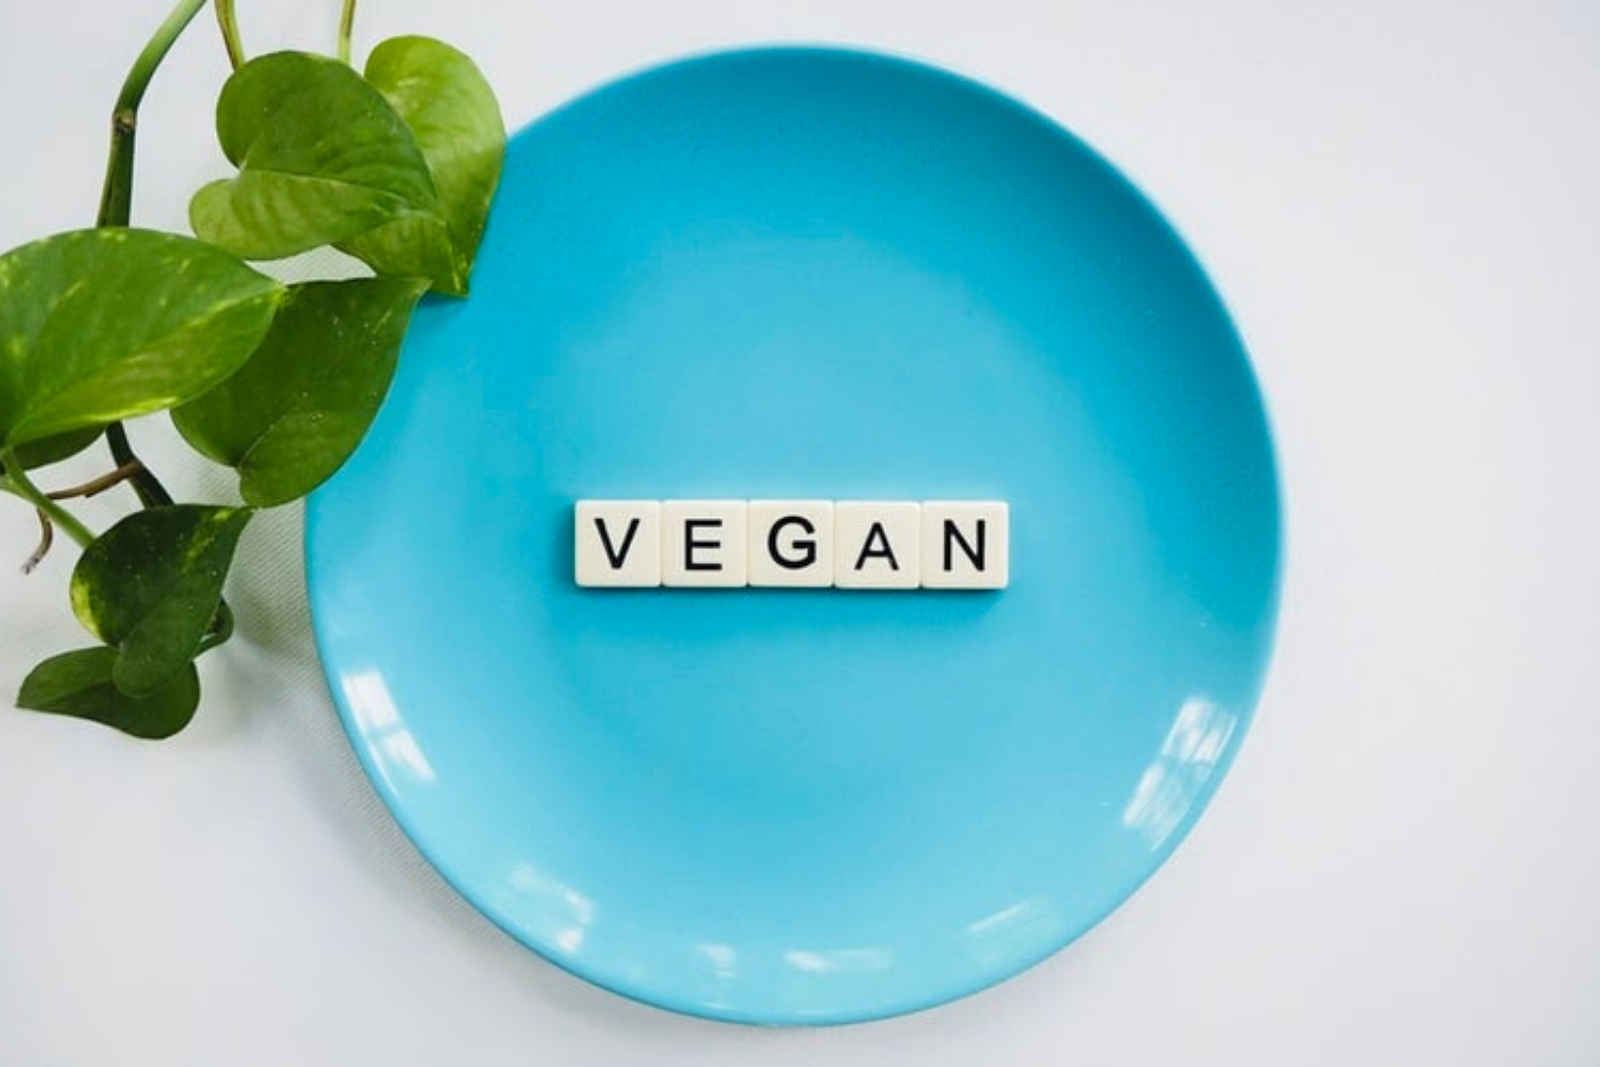 Vegan Plate | 40 Famous Vegan Celebrities You Probably Don't Know About